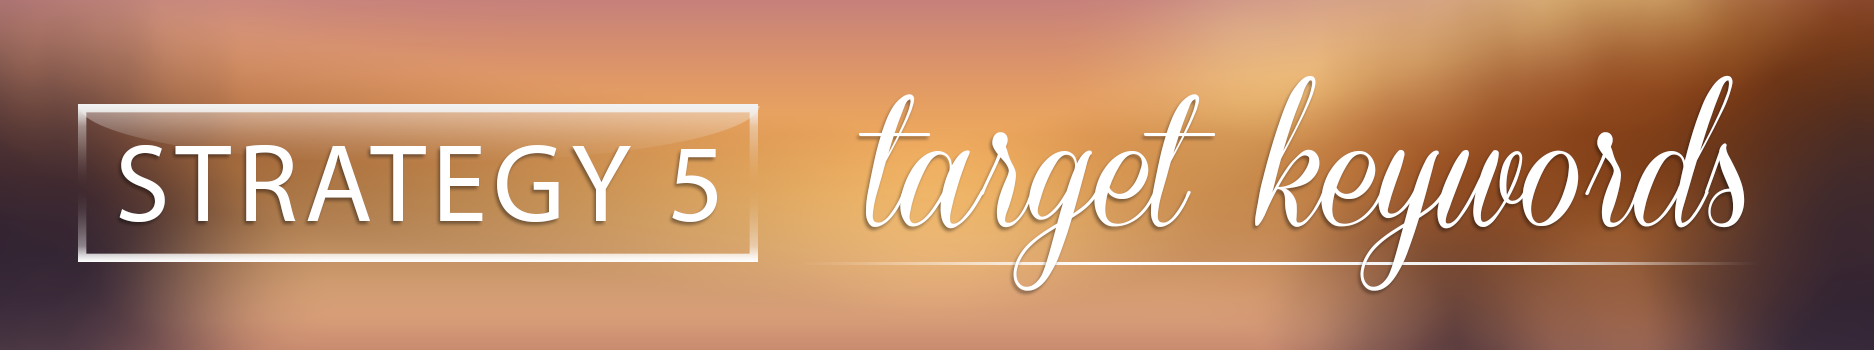 Strategy 5 - target keywords with Websites Made Easy